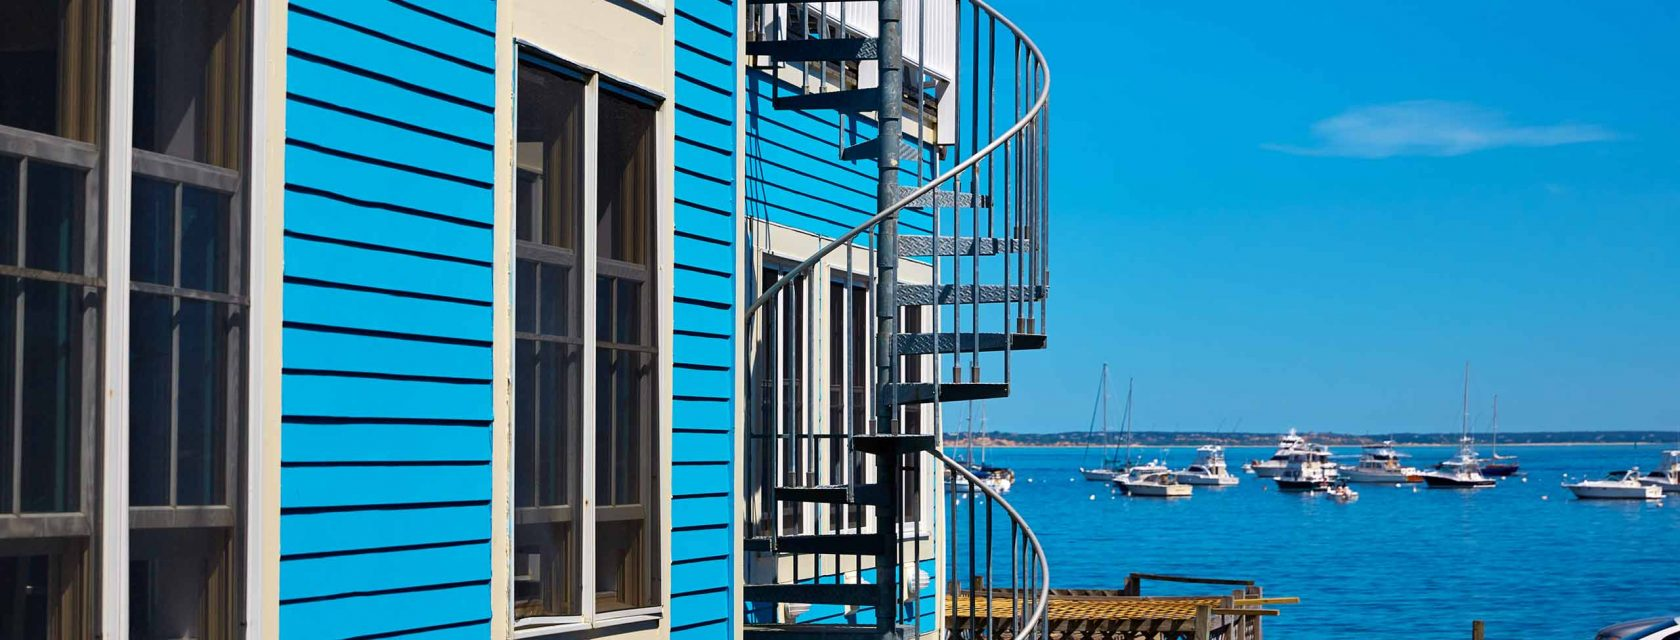 A spiral staircase from an upstairs condo overlooking Cape Cod Bay in Ptown